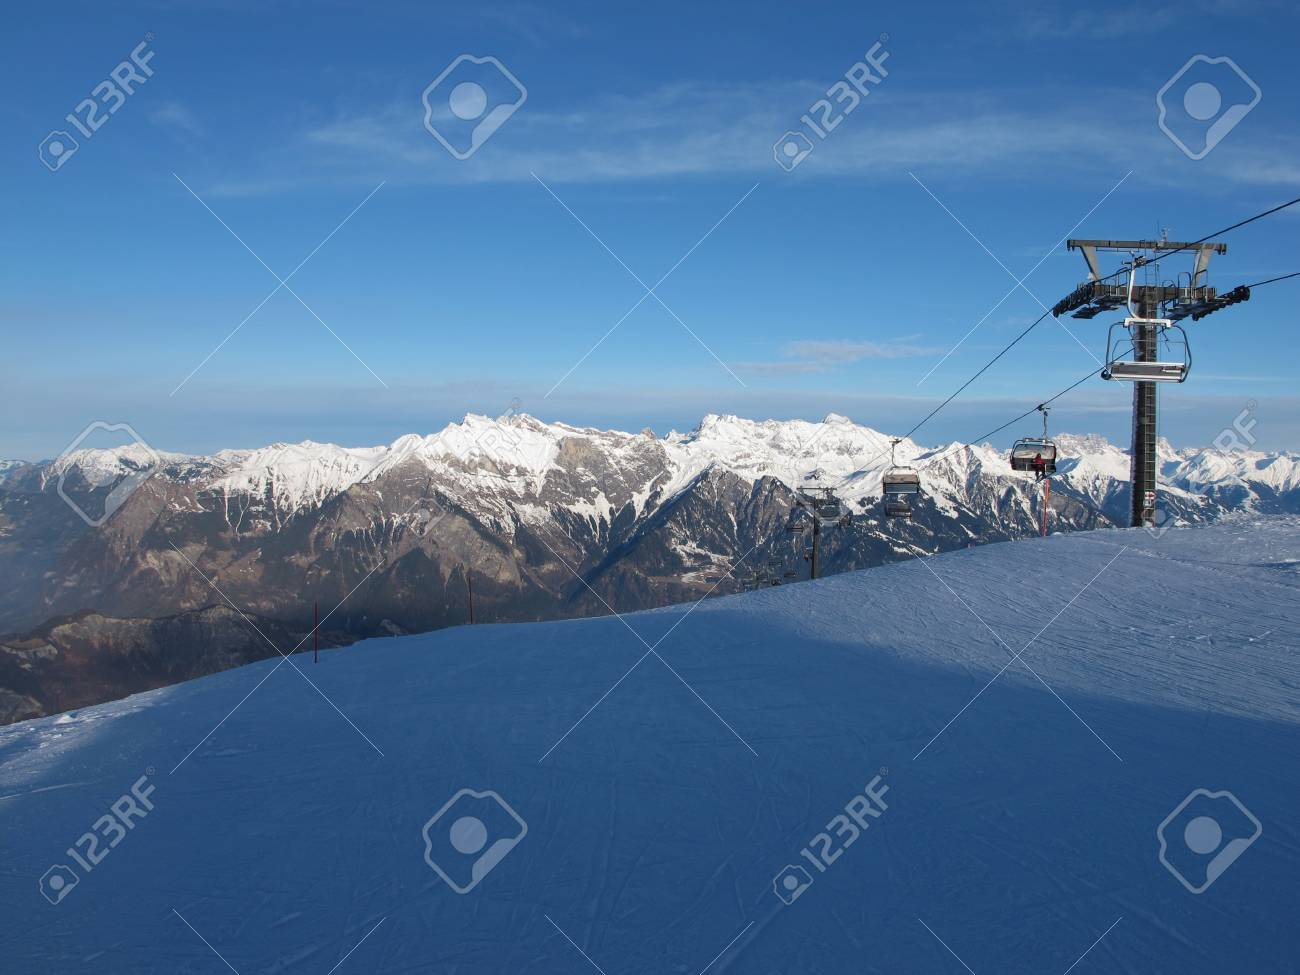 Chair Lift In The Pizol Region Stock Photo - 17222327